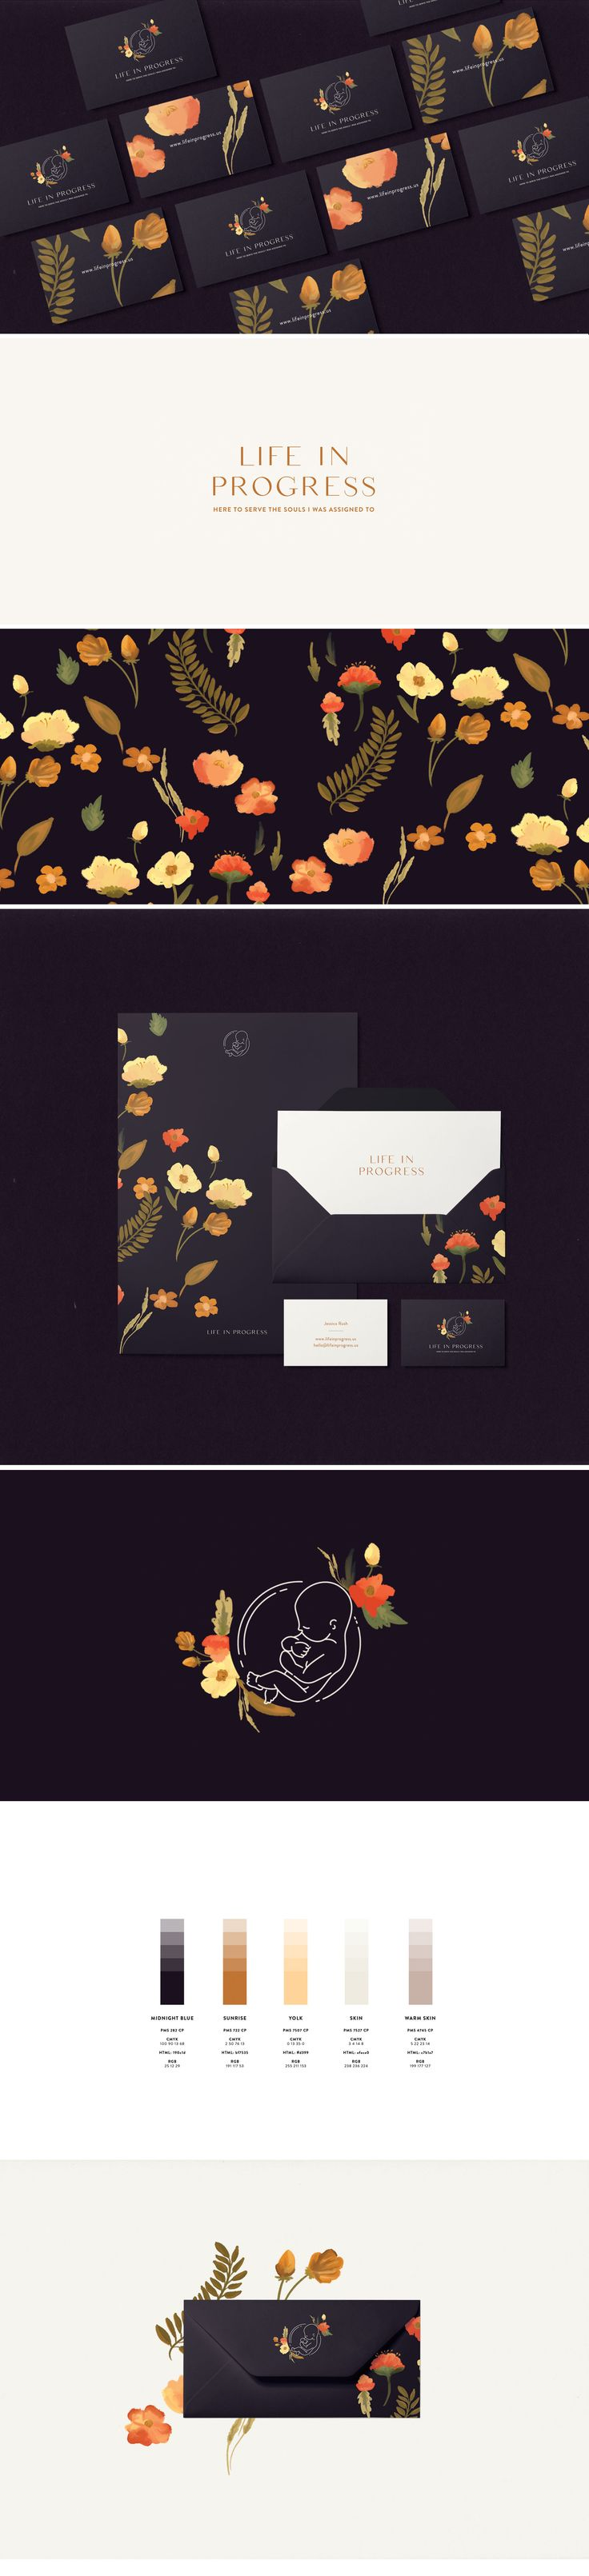 Life in Progress Brand Identity by Cocorrina